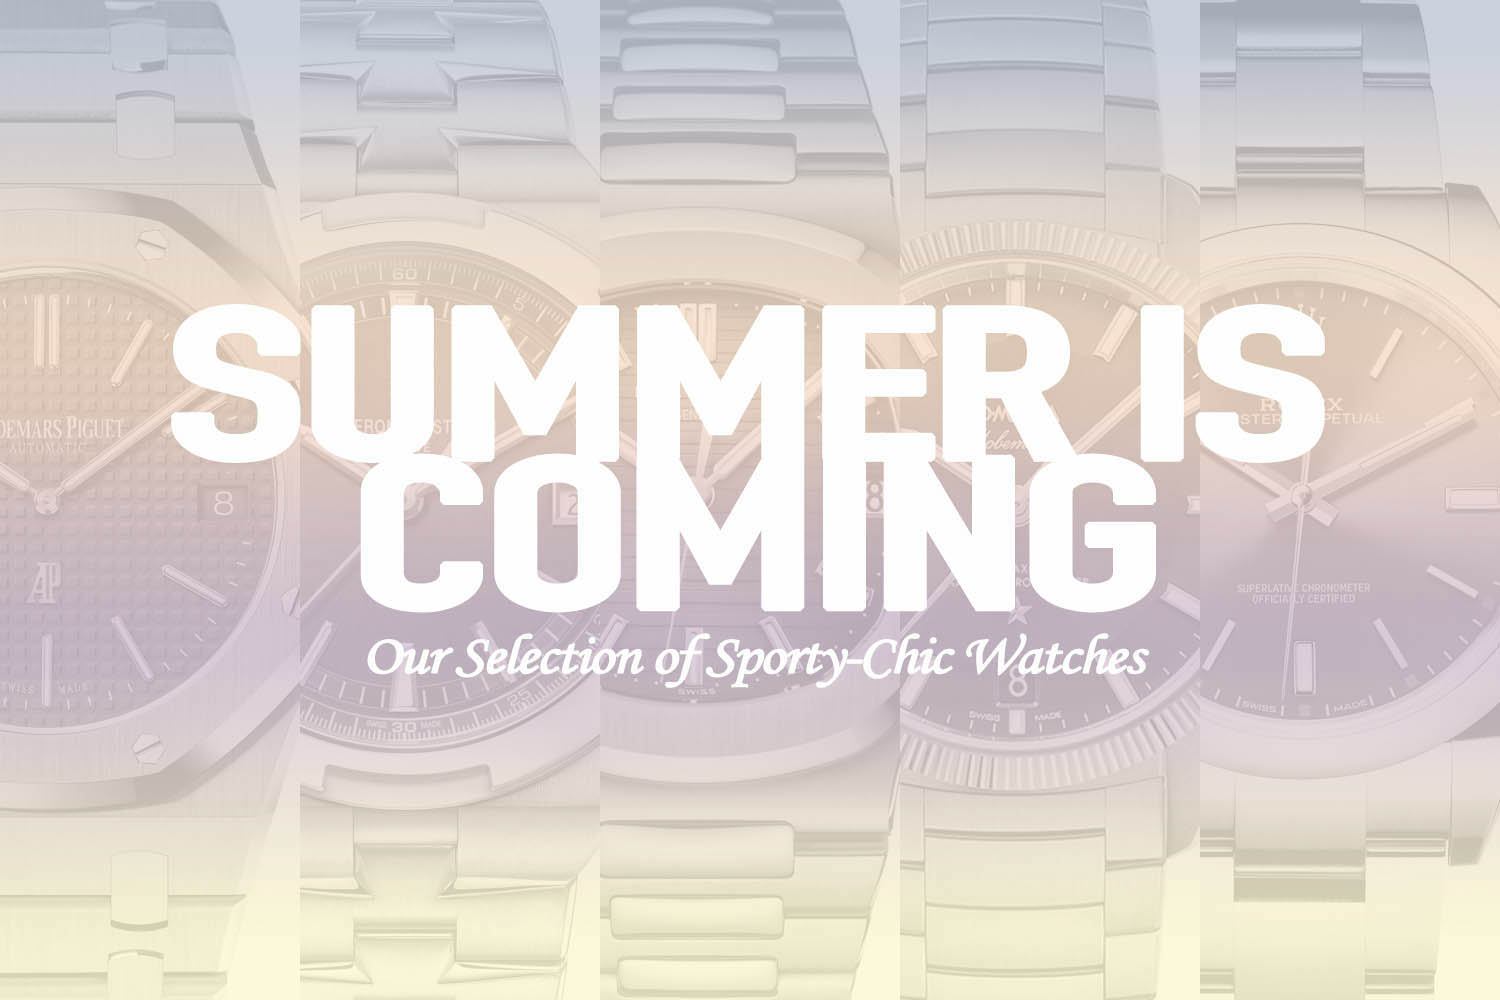 Sports-chic watches - Summer selection